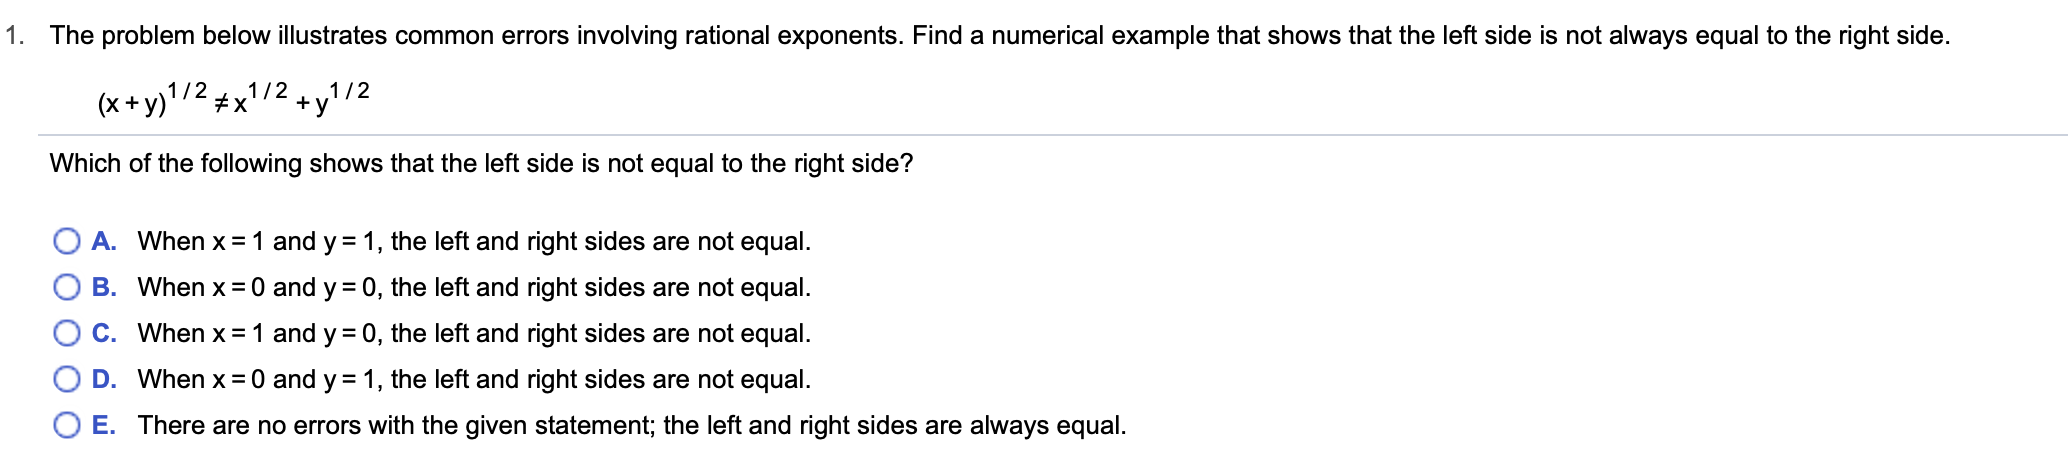 1. The problem below illustrates common errors involving rational exponents. Find a numerical example that shows that the left side is not always equal to the right side. 1/ 21/2 x (x+y)1/2 y Which of the following shows that the left side is not equal to the right side? A. When x 1 and y = 1, the left and right sides are not equal B. When x 0 and y 0, the left and right sides are not equal C. When x 1 and y 0, the left and right sides are not equal. D. When x 0 and y 1, the left and right sides are not equal. O E. There are no errors with the given statement; the left and right sides are alwayss equal